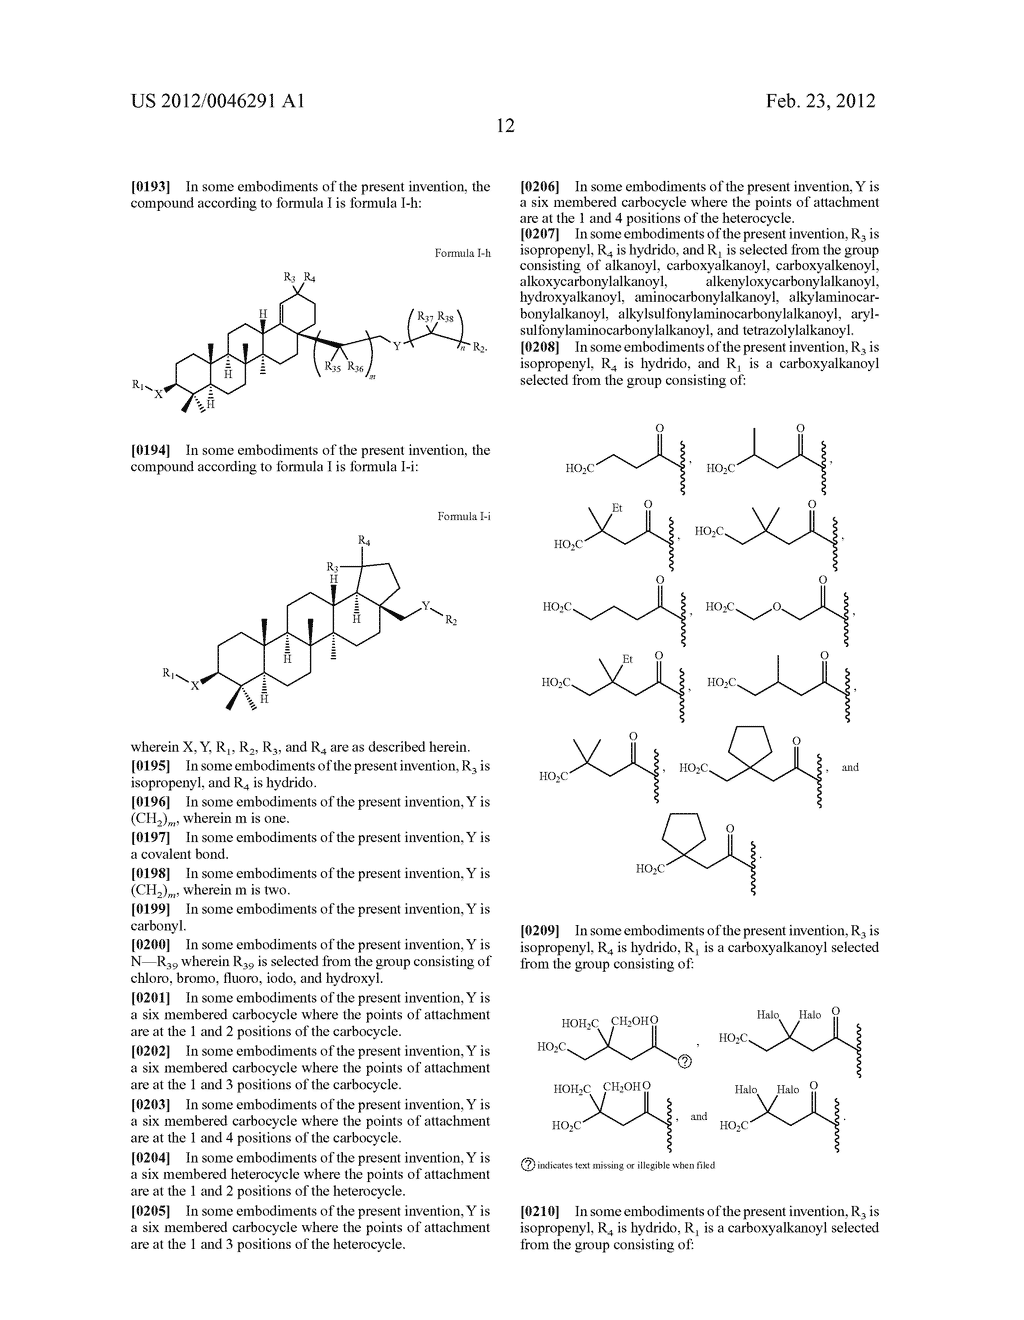 Extended Triterpene Derivatives - diagram, schematic, and image 14